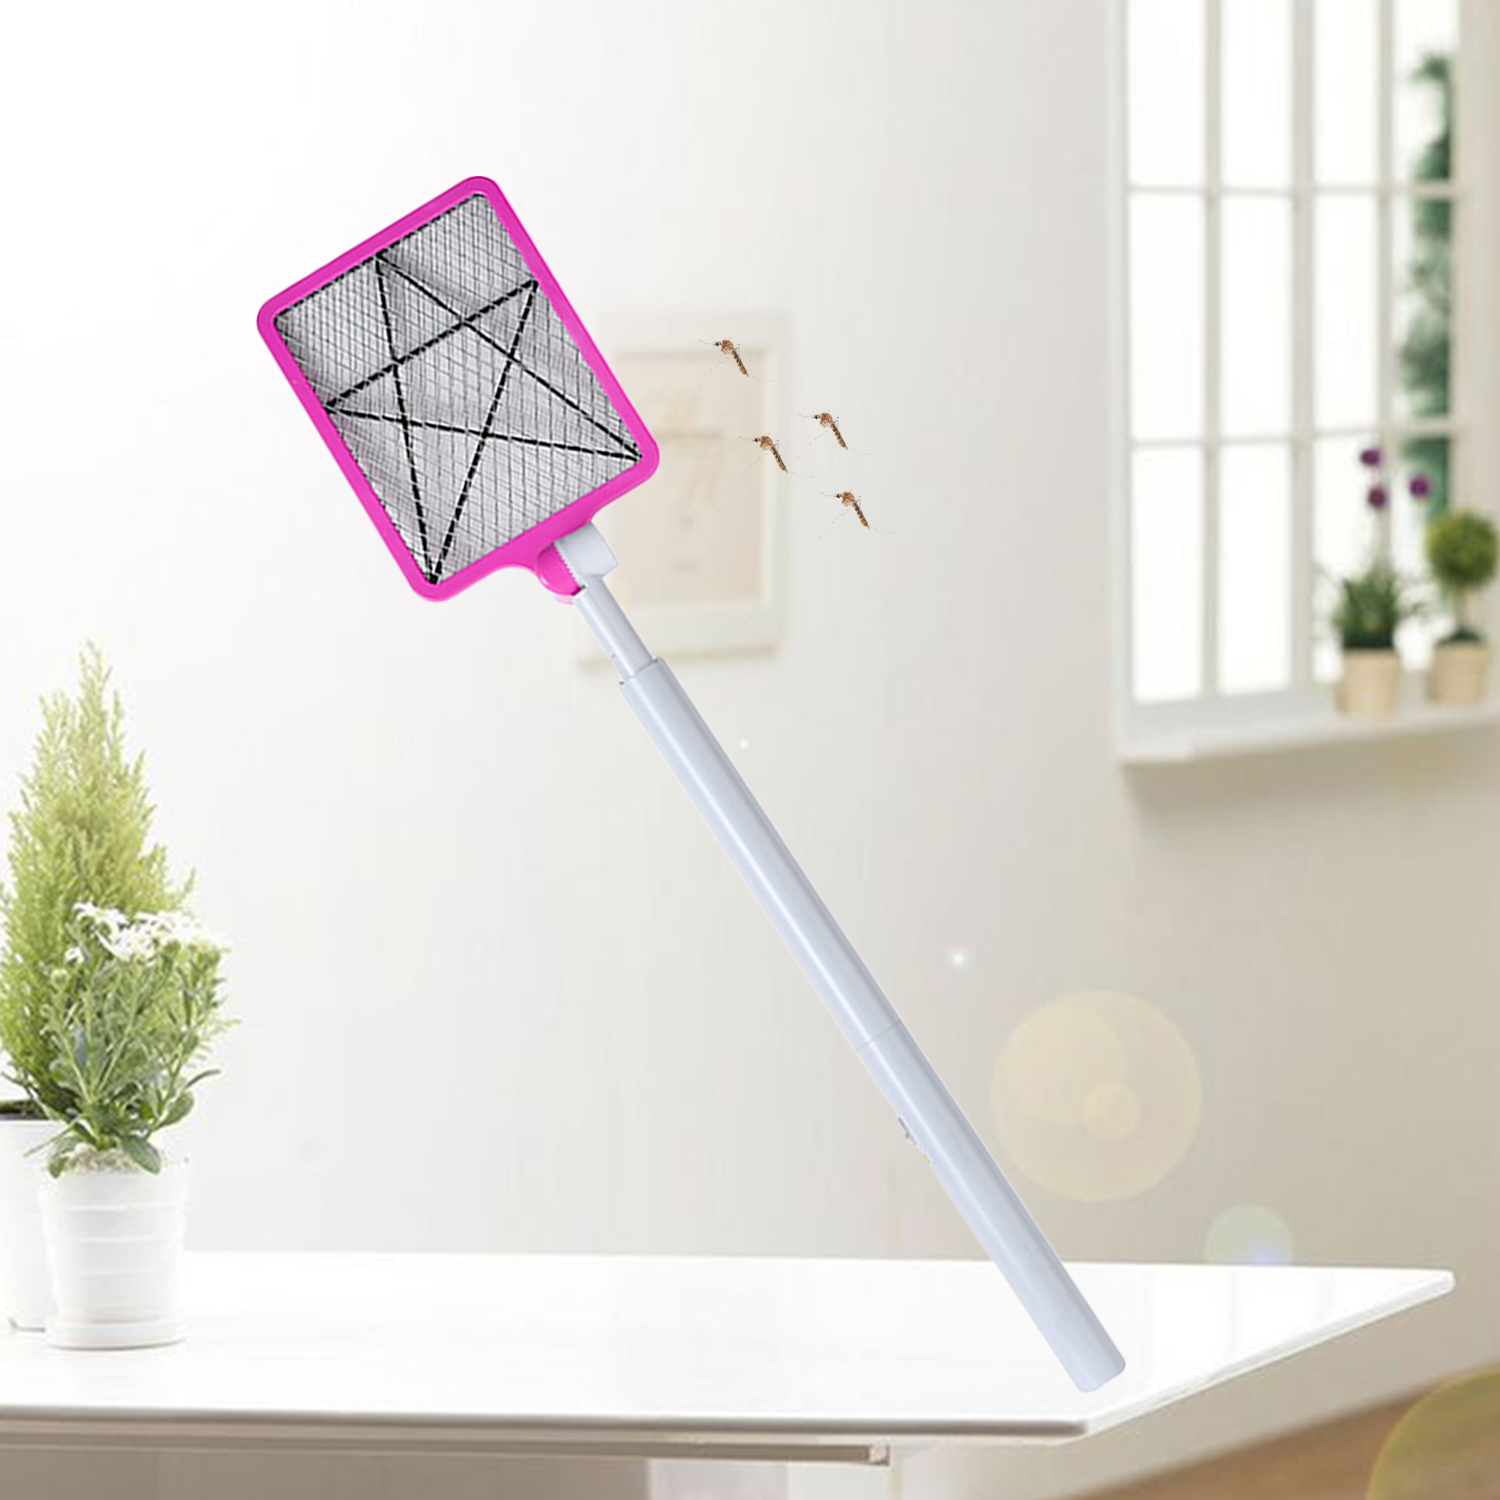 Behogar Retractable USB Rechargeable Electric Bug Fly Mosquito Insect Swatter Racket Zapper Killer with 180 Degree Rotate HeadBehogar Retractable USB Rechargeable Electric Bug Fly Mosquito Insect Swatter Racket Zapper Killer with 180 Degree Rotate Head